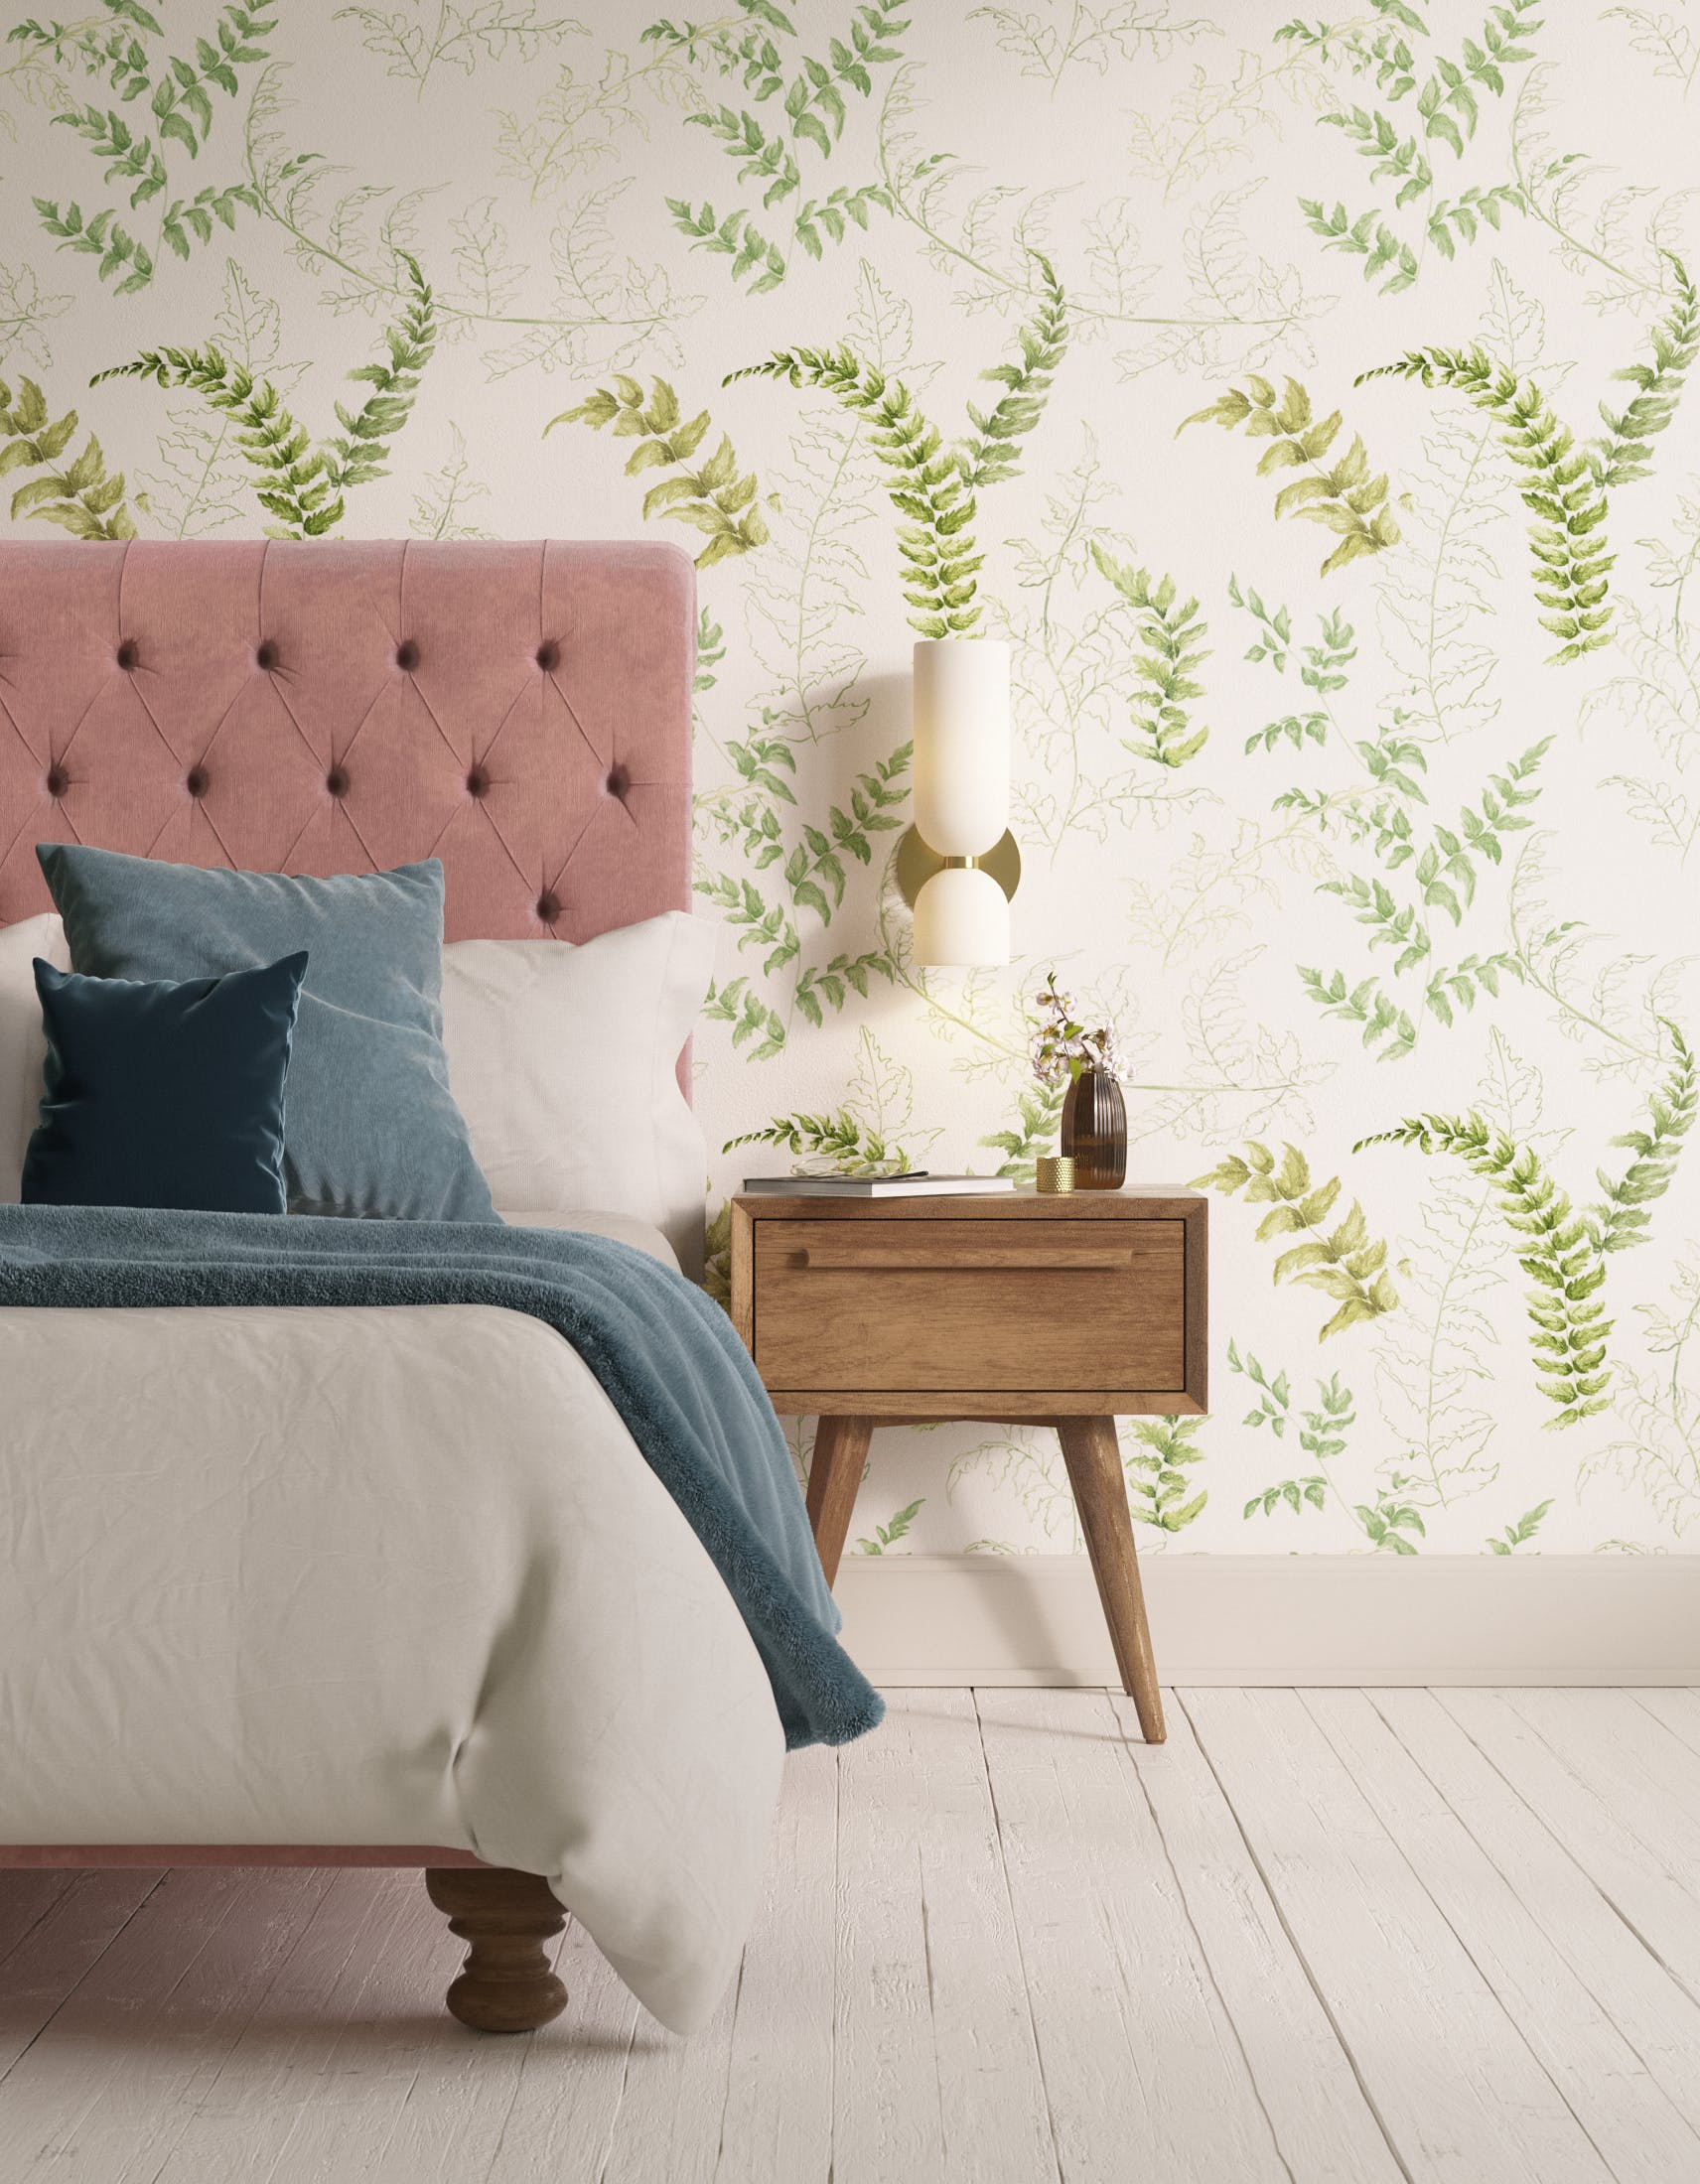 Bedroom decorated with Lick x Jenna Hewitt Fern 01 green botanical wallpaper